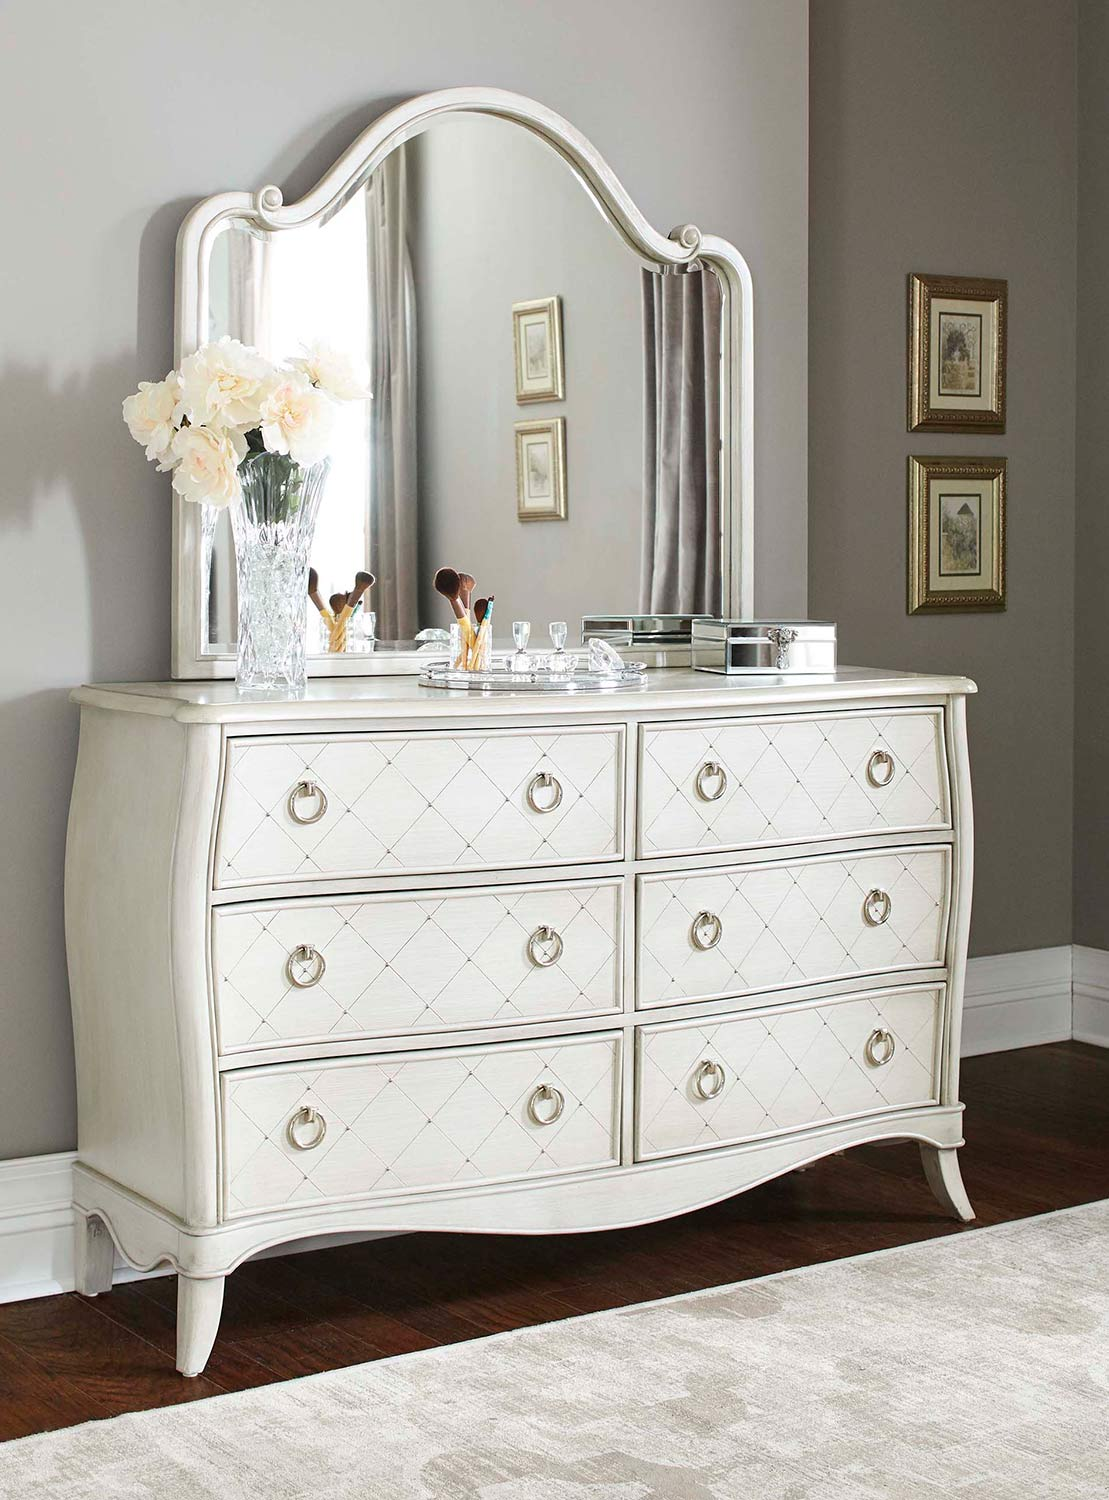 NE Kids Angela 6 Drawer Dresser With Wood Arc Mirror - Opal Grey